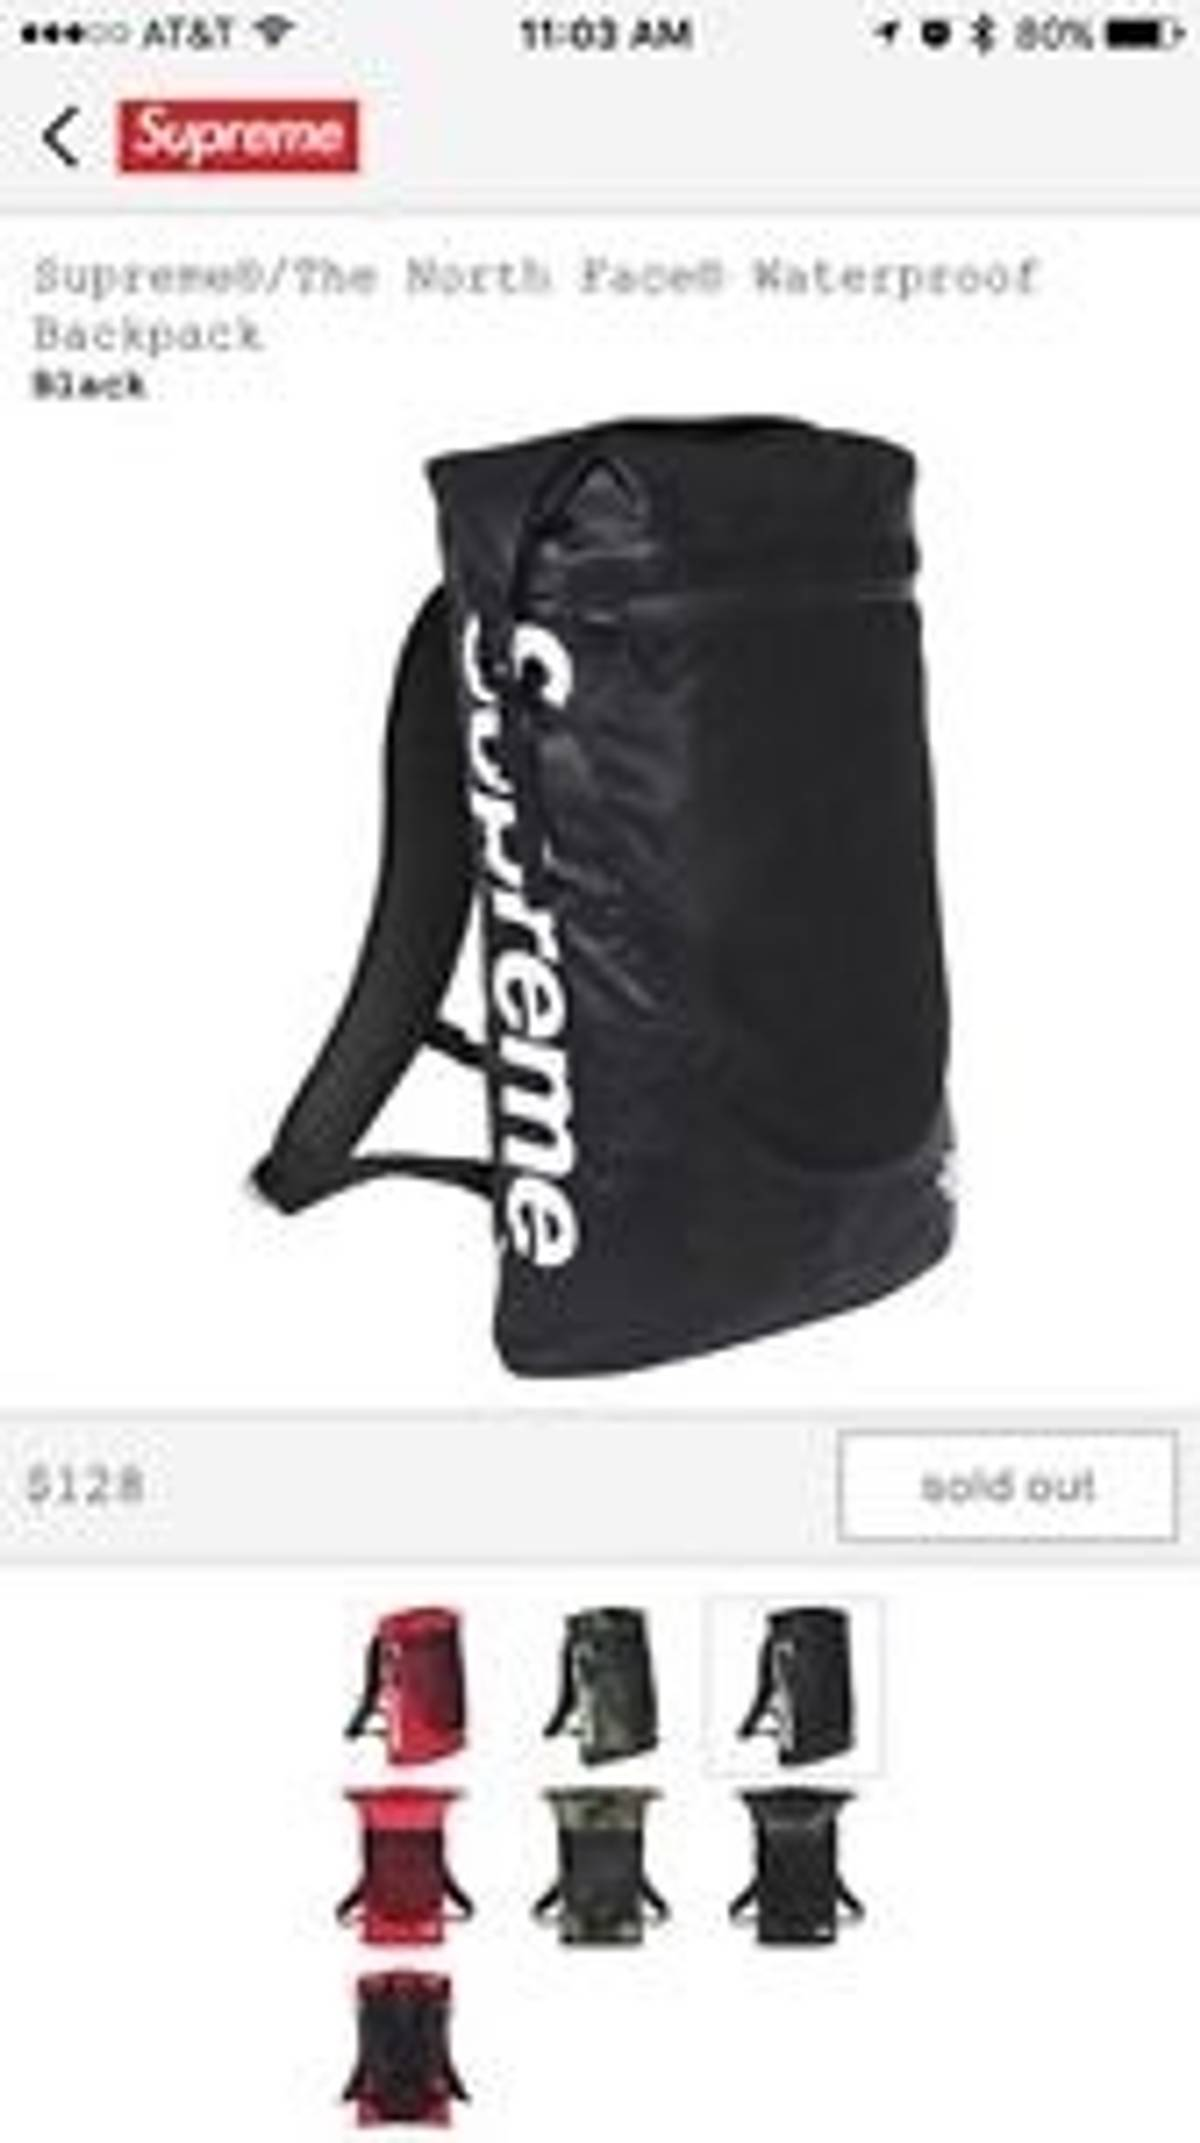 60639eb53 Supreme Ss 17 North Face X Supreme Waterproof Backpack Size One Size $130